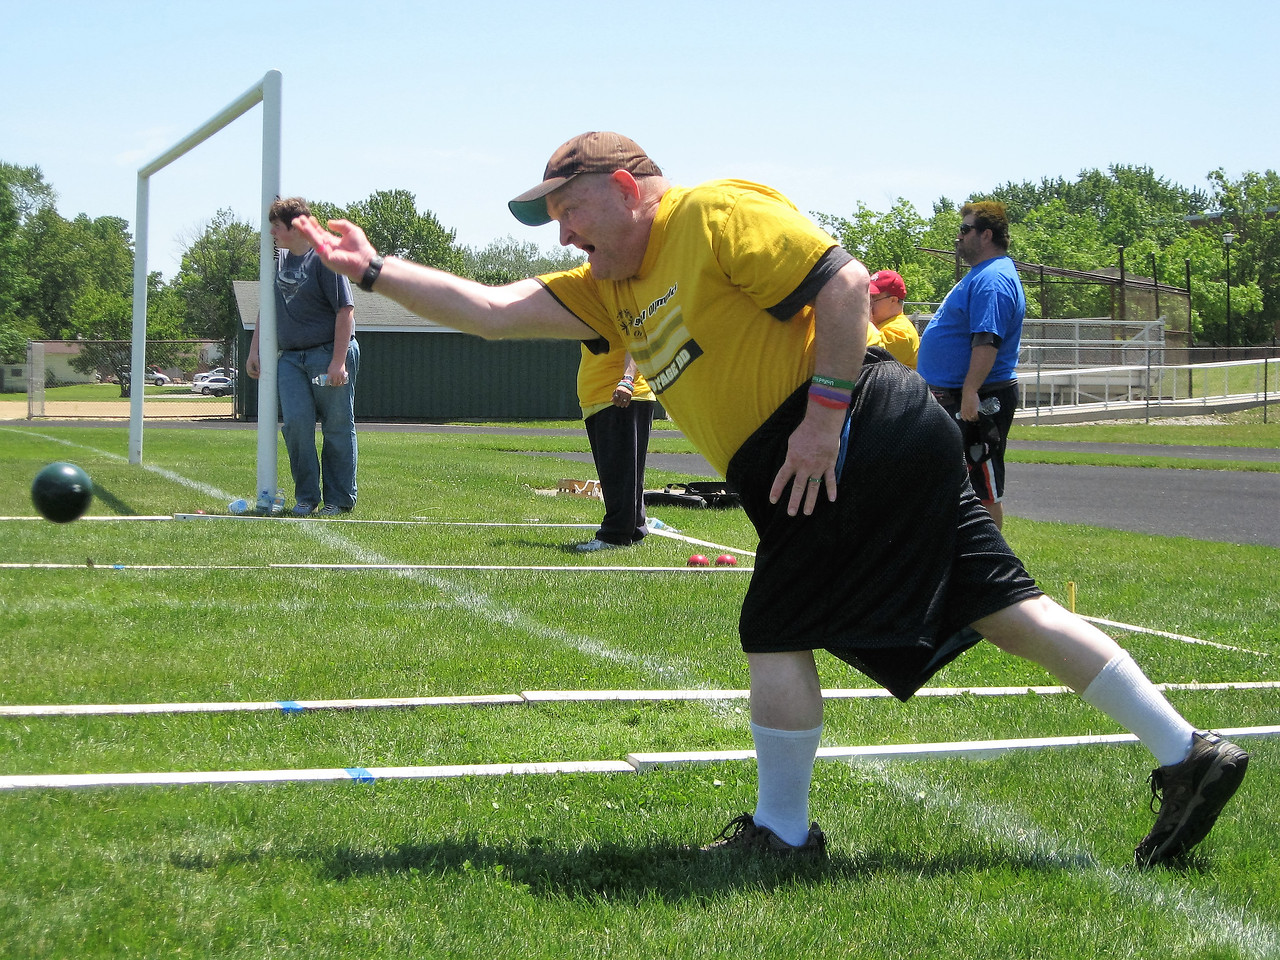 BOB SANDRICK / GAZETTE Danny Overton of Portage County competed in bocce ball Saturday during the 35th Special Olympics Medina County Invitational at Claggett Middle School.